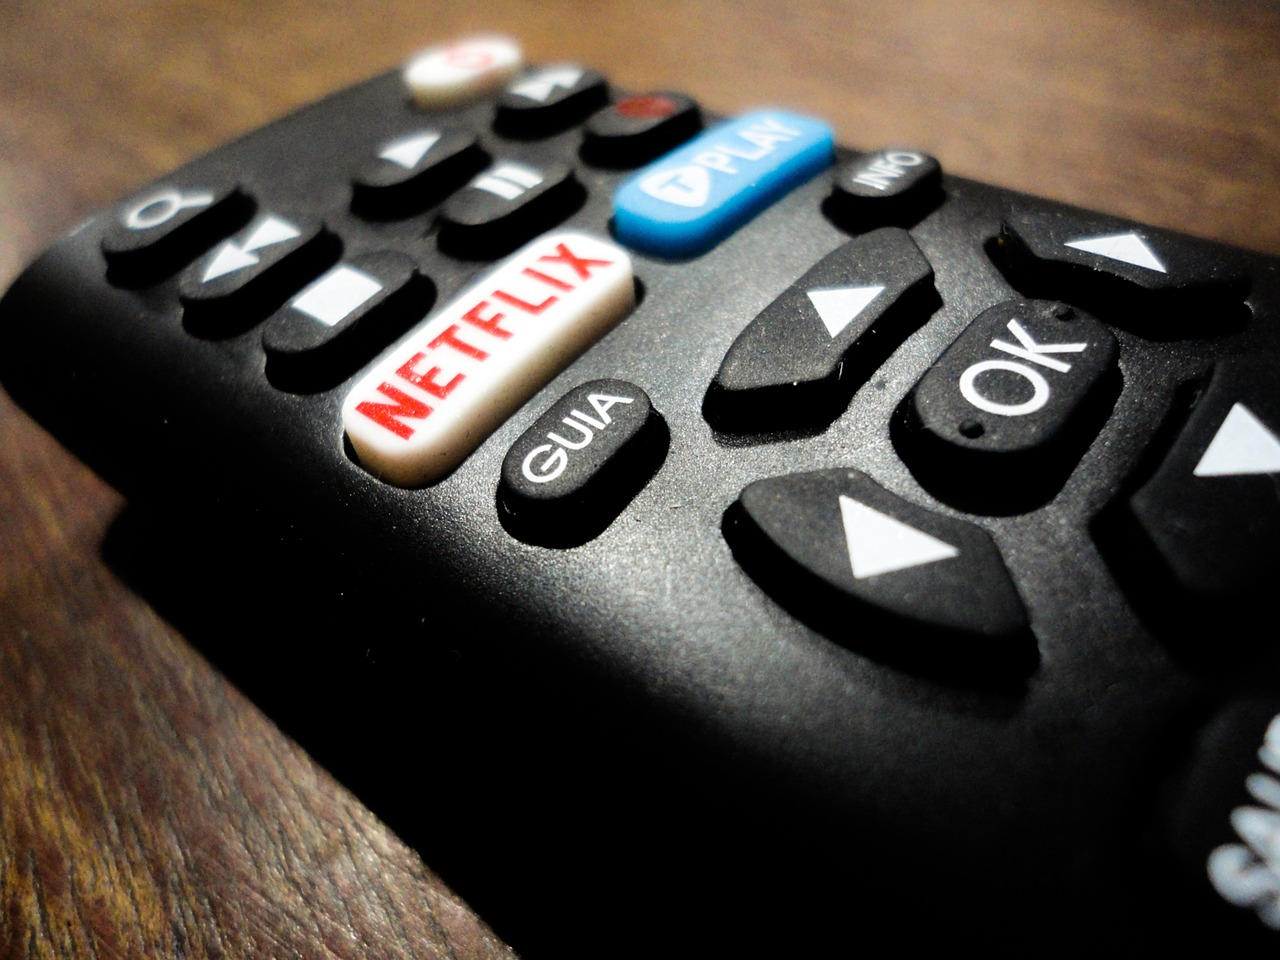 Netflix, jgryntysz, https://pixabay.com/it/photos/netflix-telecomando-elettronico-2705725/ CC0